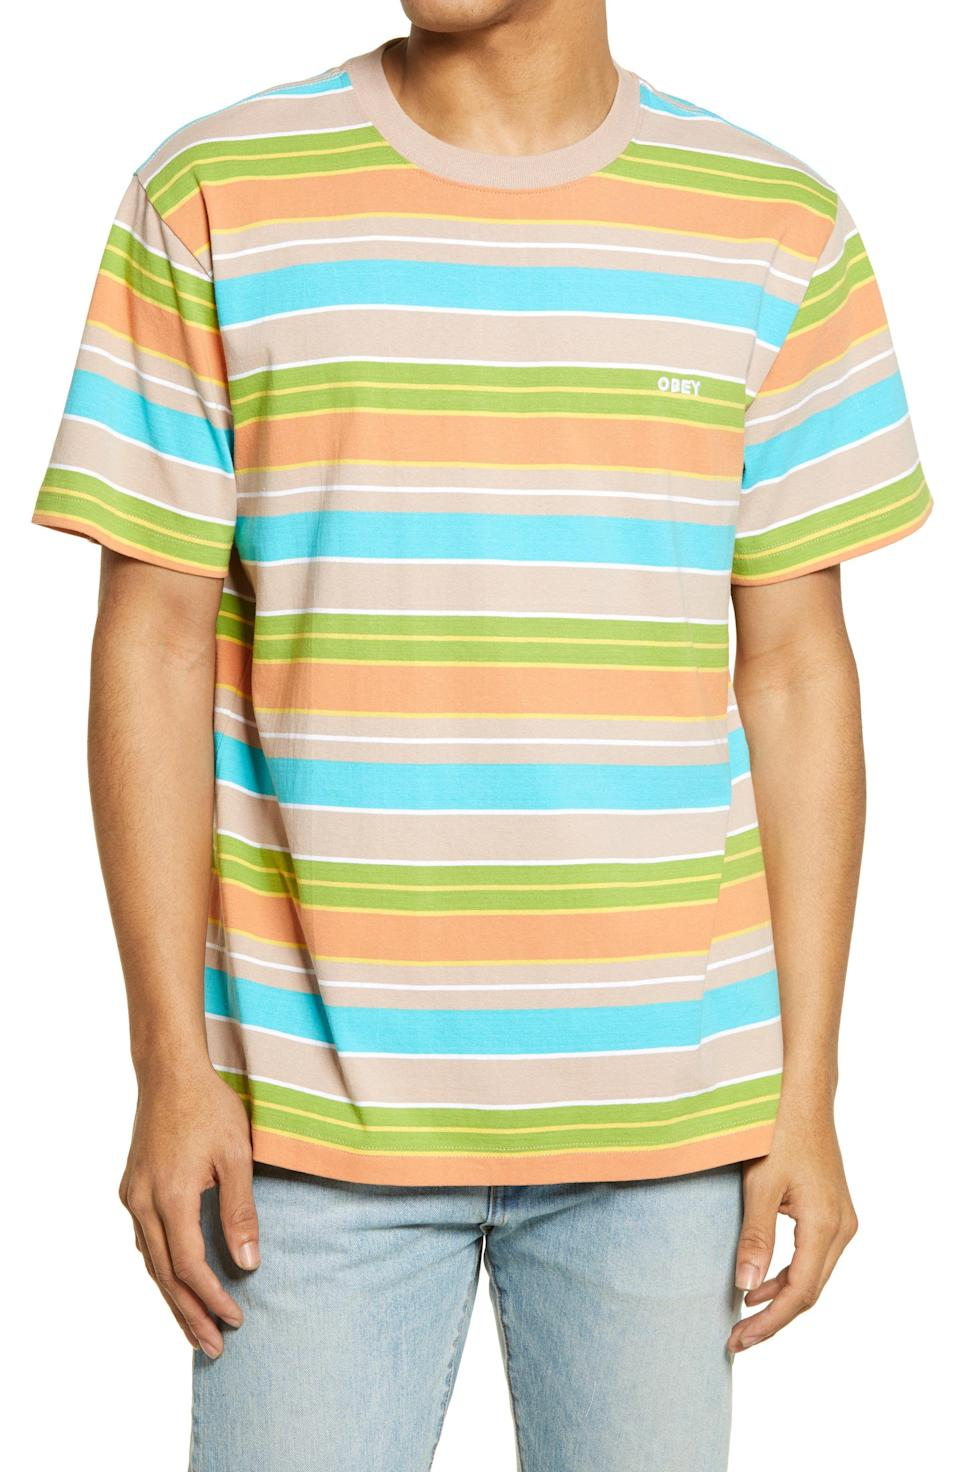 """<p><strong>Obey</strong></p><p>nordstrom.com</p><p><strong>$28.20</strong></p><p><a href=""""https://go.redirectingat.com?id=74968X1596630&url=https%3A%2F%2Fwww.nordstrom.com%2Fs%2Fobey-staple-stripe-t-shirt%2F5861283&sref=https%3A%2F%2Fwww.esquire.com%2Fstyle%2Fg36535194%2Fnordstrom-mens-sale-half-yearly-spring-2021%2F"""" rel=""""nofollow noopener"""" target=""""_blank"""" data-ylk=""""slk:Shop Now"""" class=""""link rapid-noclick-resp"""">Shop Now</a></p><p>Your T-shirt collection looking a little drab? This multicolored stripy one is sure to brighten things up. </p>"""